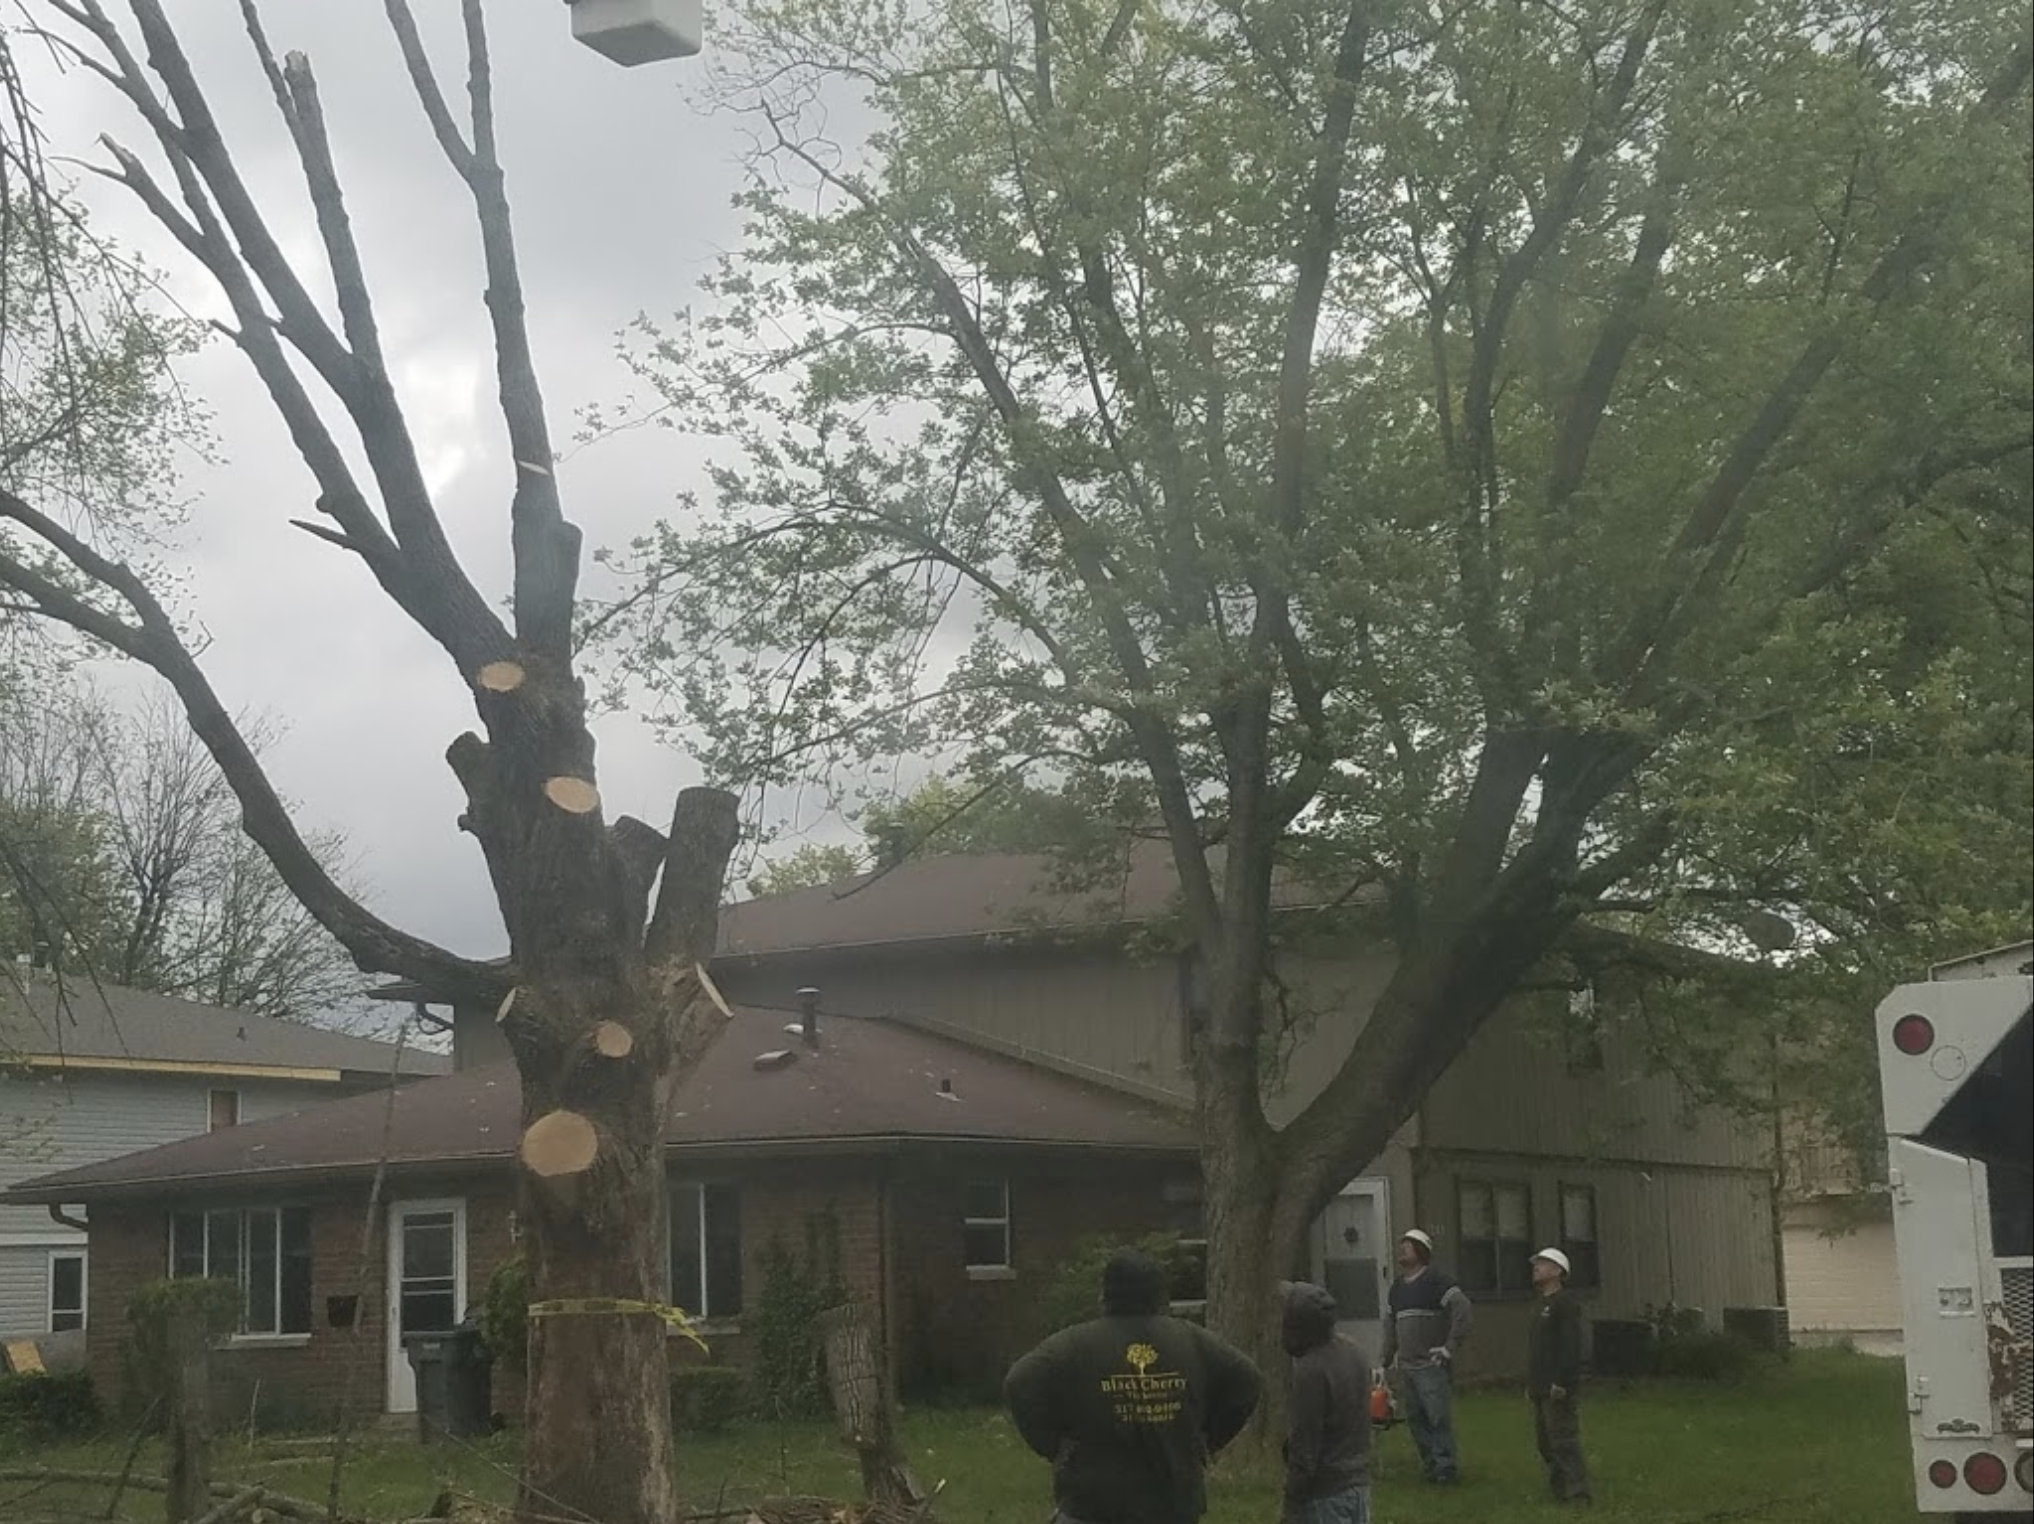 black-cherry-tree-service-tree-trimming-removal.png